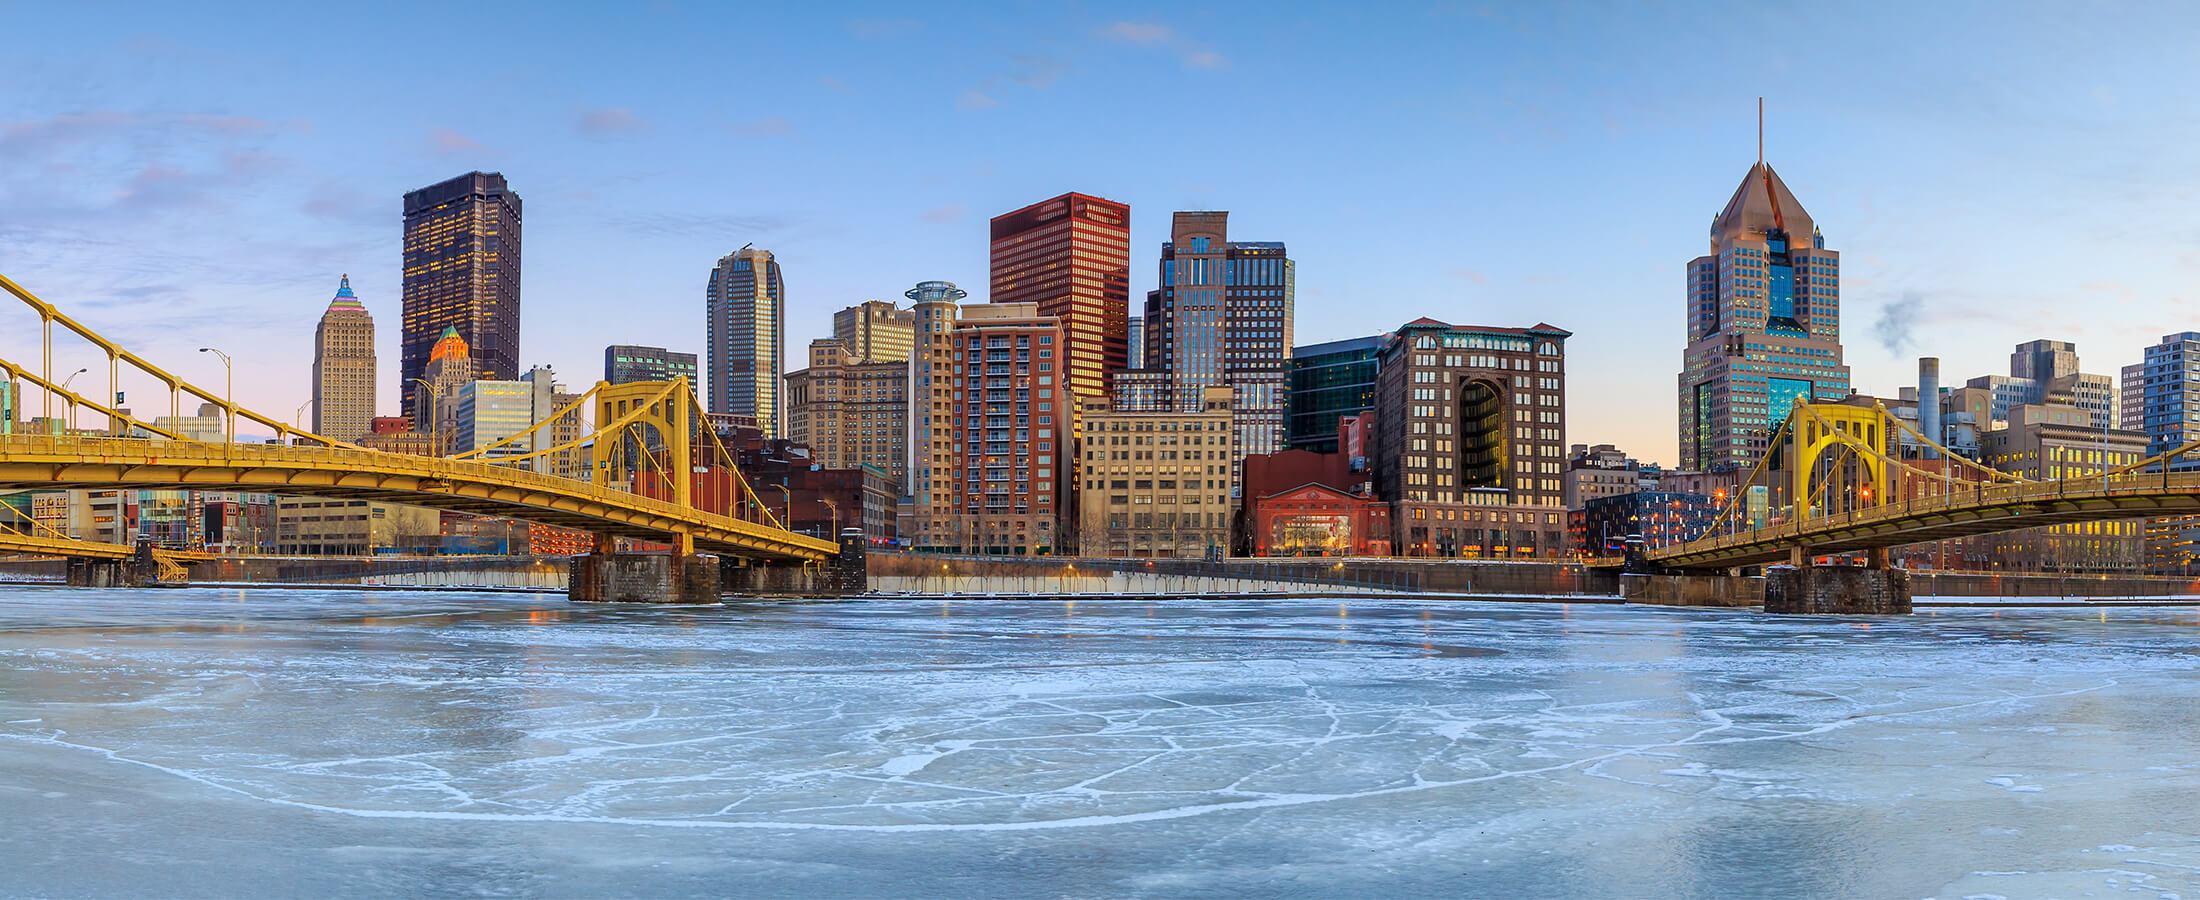 North Pittsburgh Real Estate | North Pittsburgh Homes and